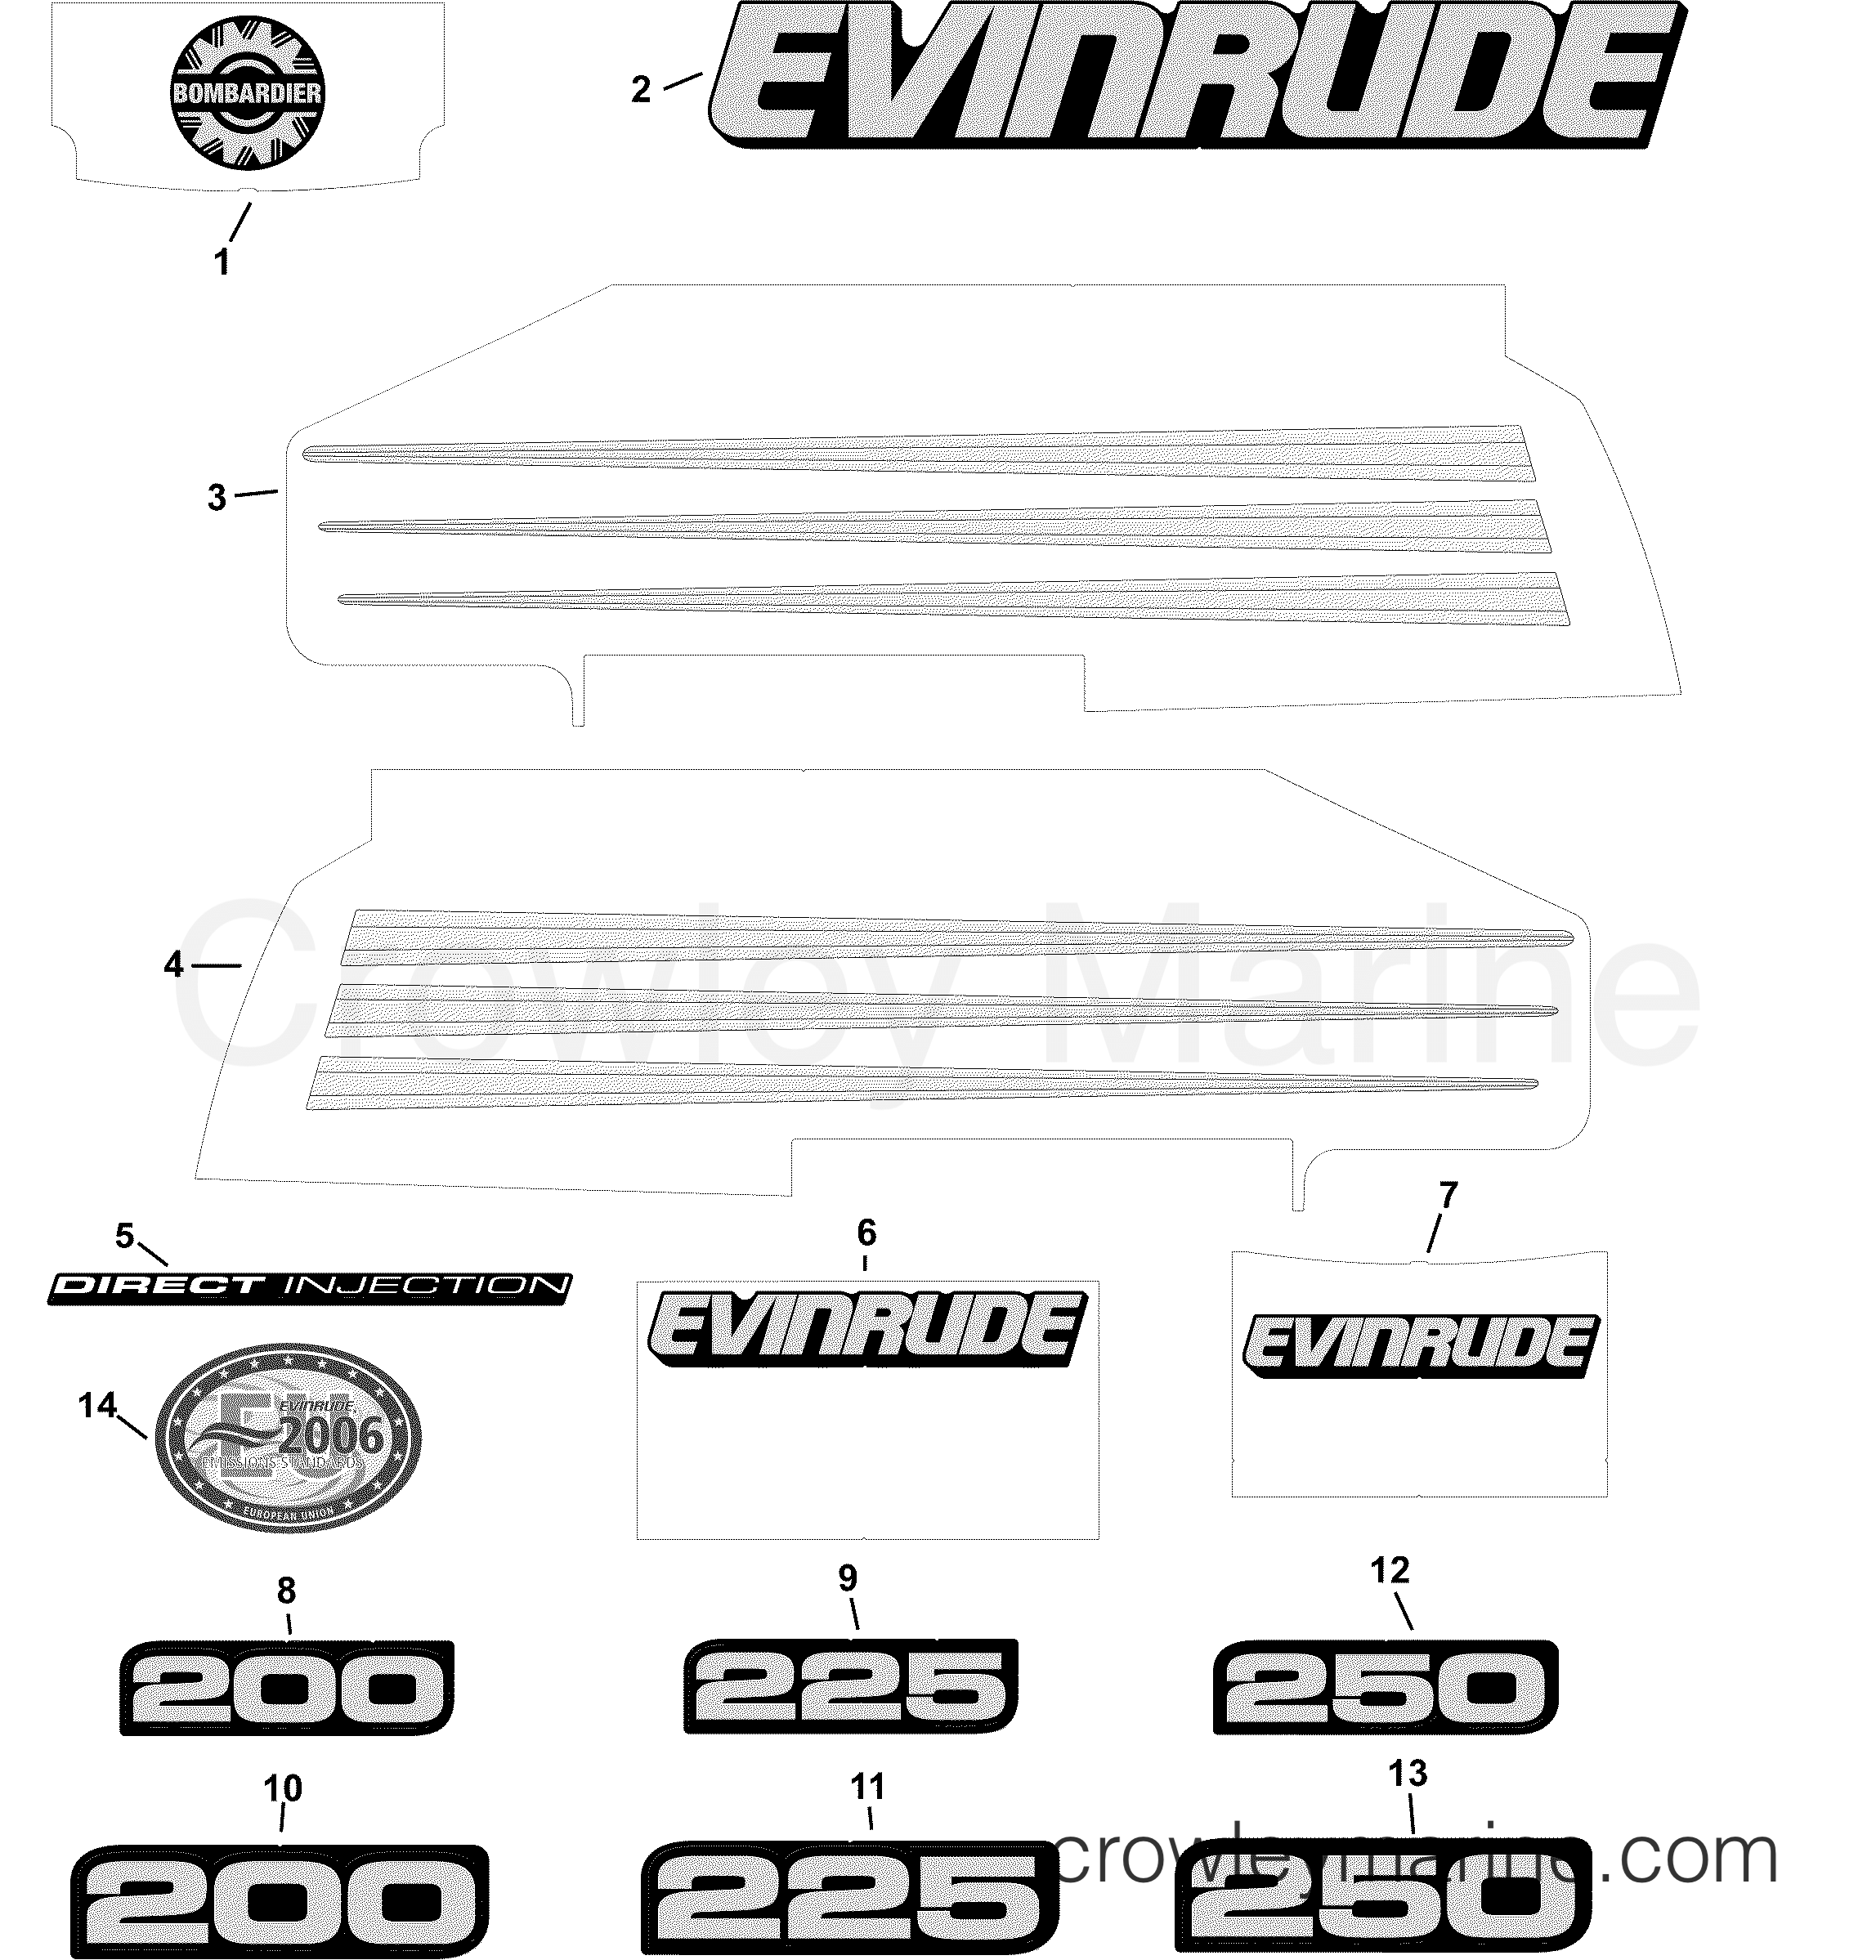 2004 Evinrude Outboards 200 - E200FCXSRB DECALS - BLUE MODELS section